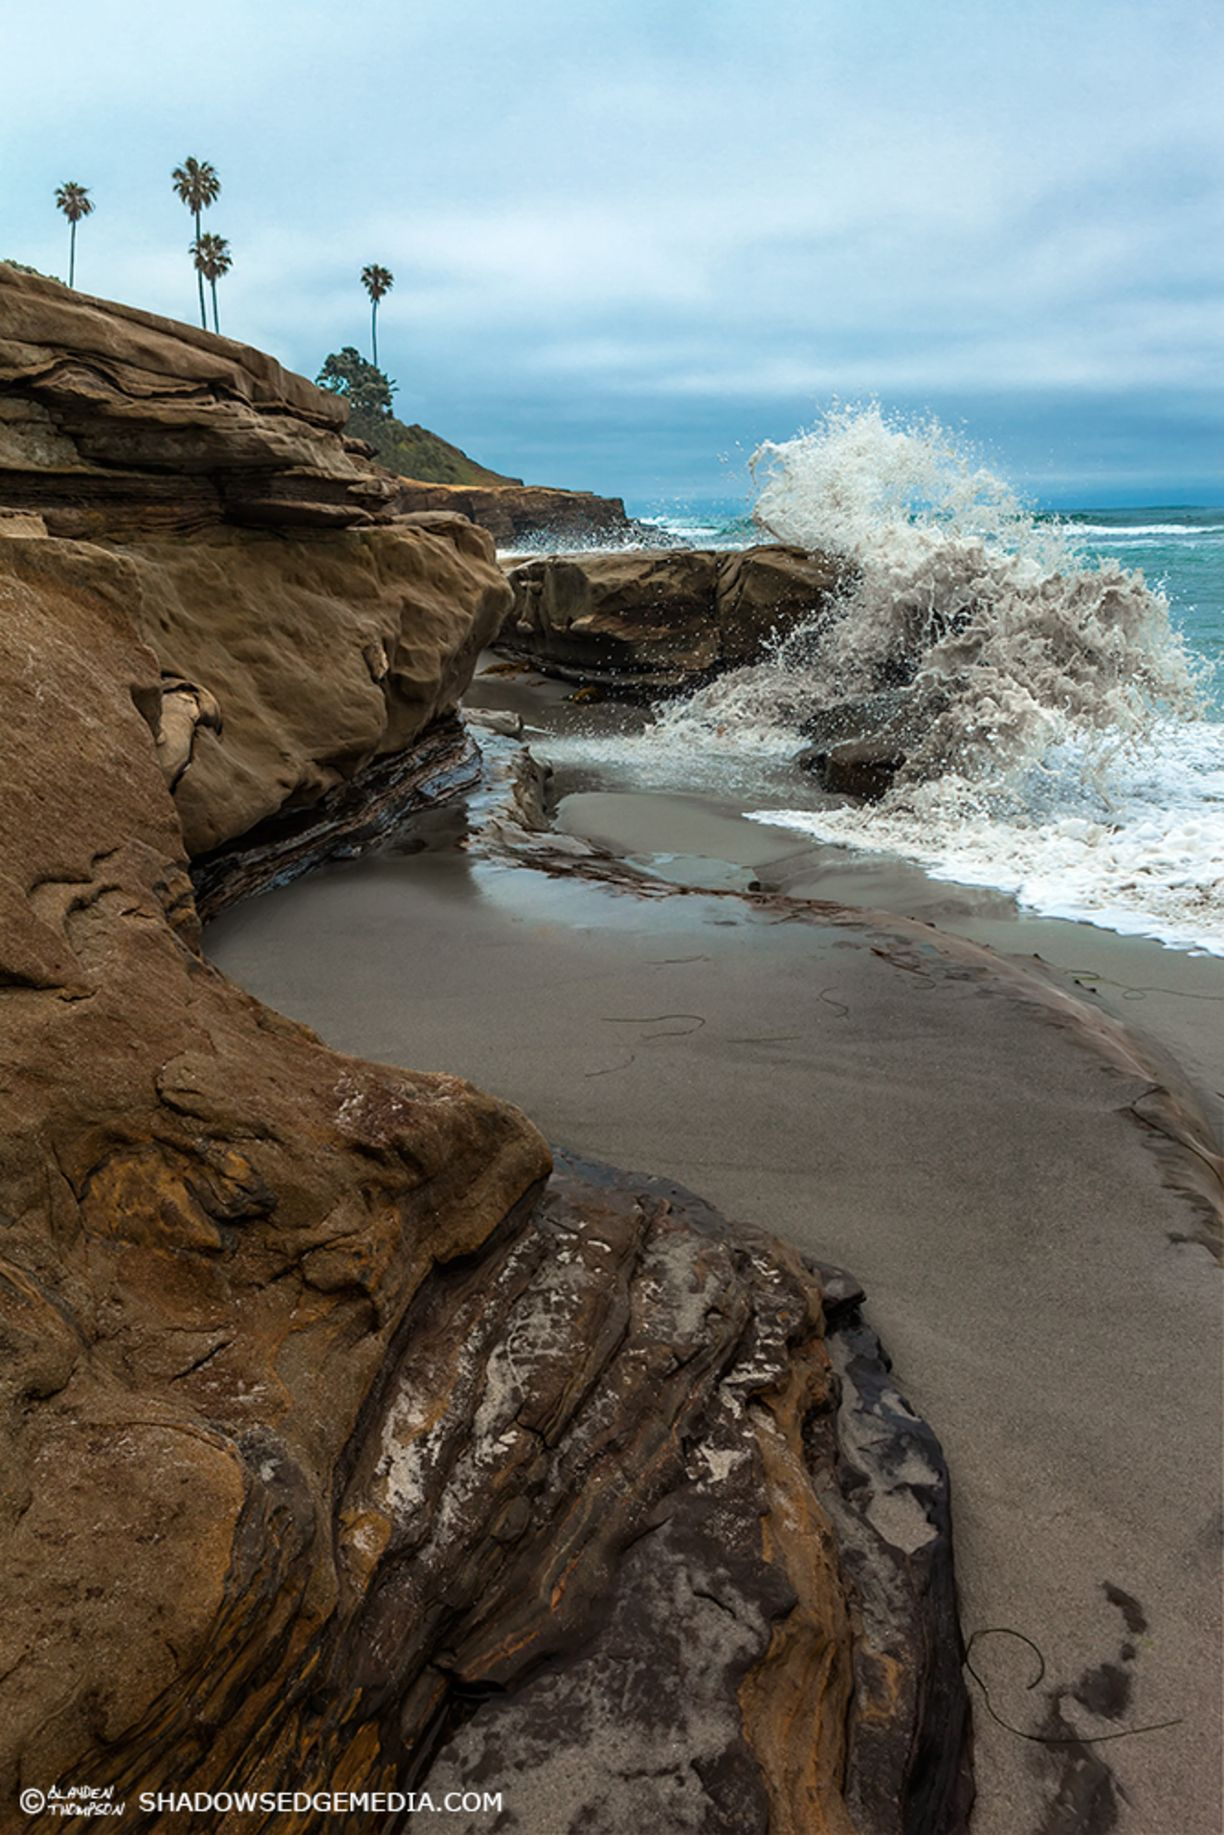 Explore things to do in San Diego -  Photo by Blayden Thompson #sandiego